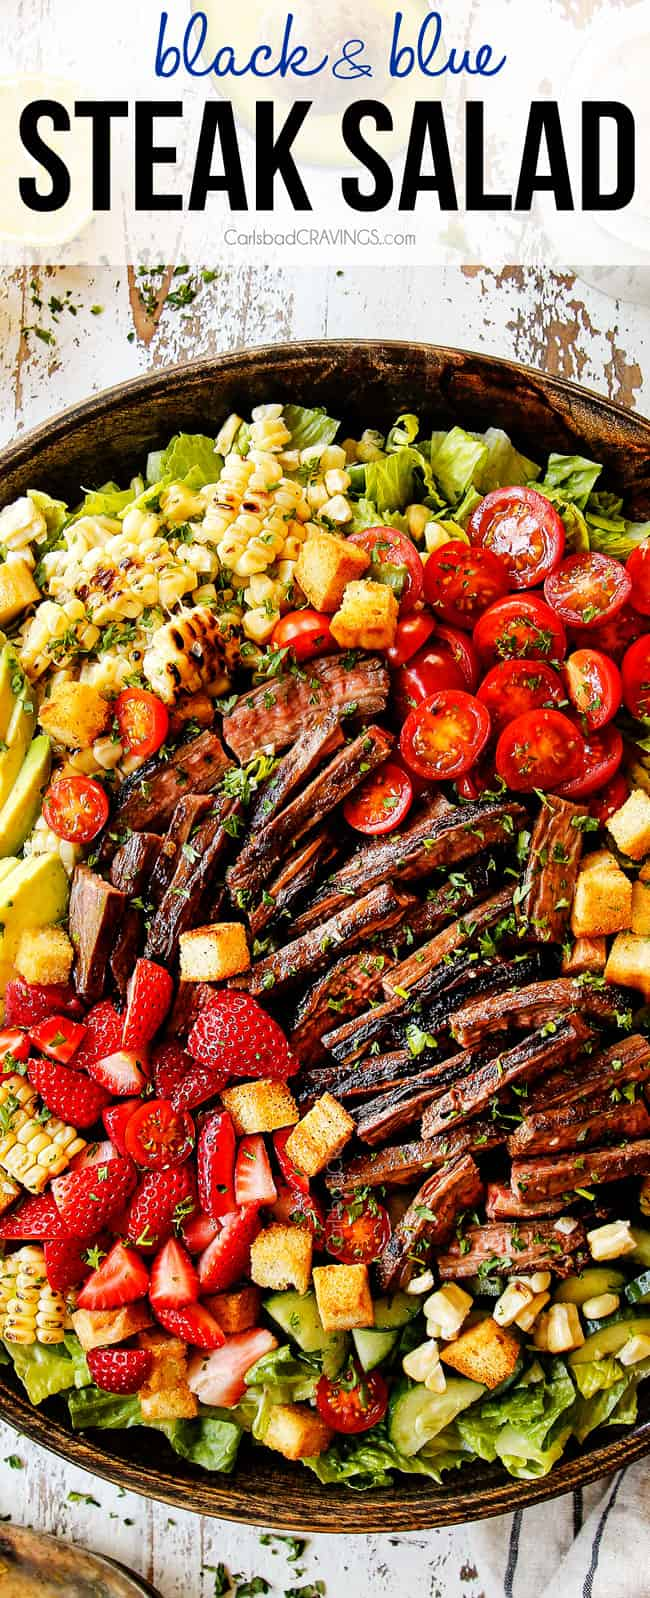 top view of grilled steak salad with grilled corn,tomatoes and avocado in a wooden bowl